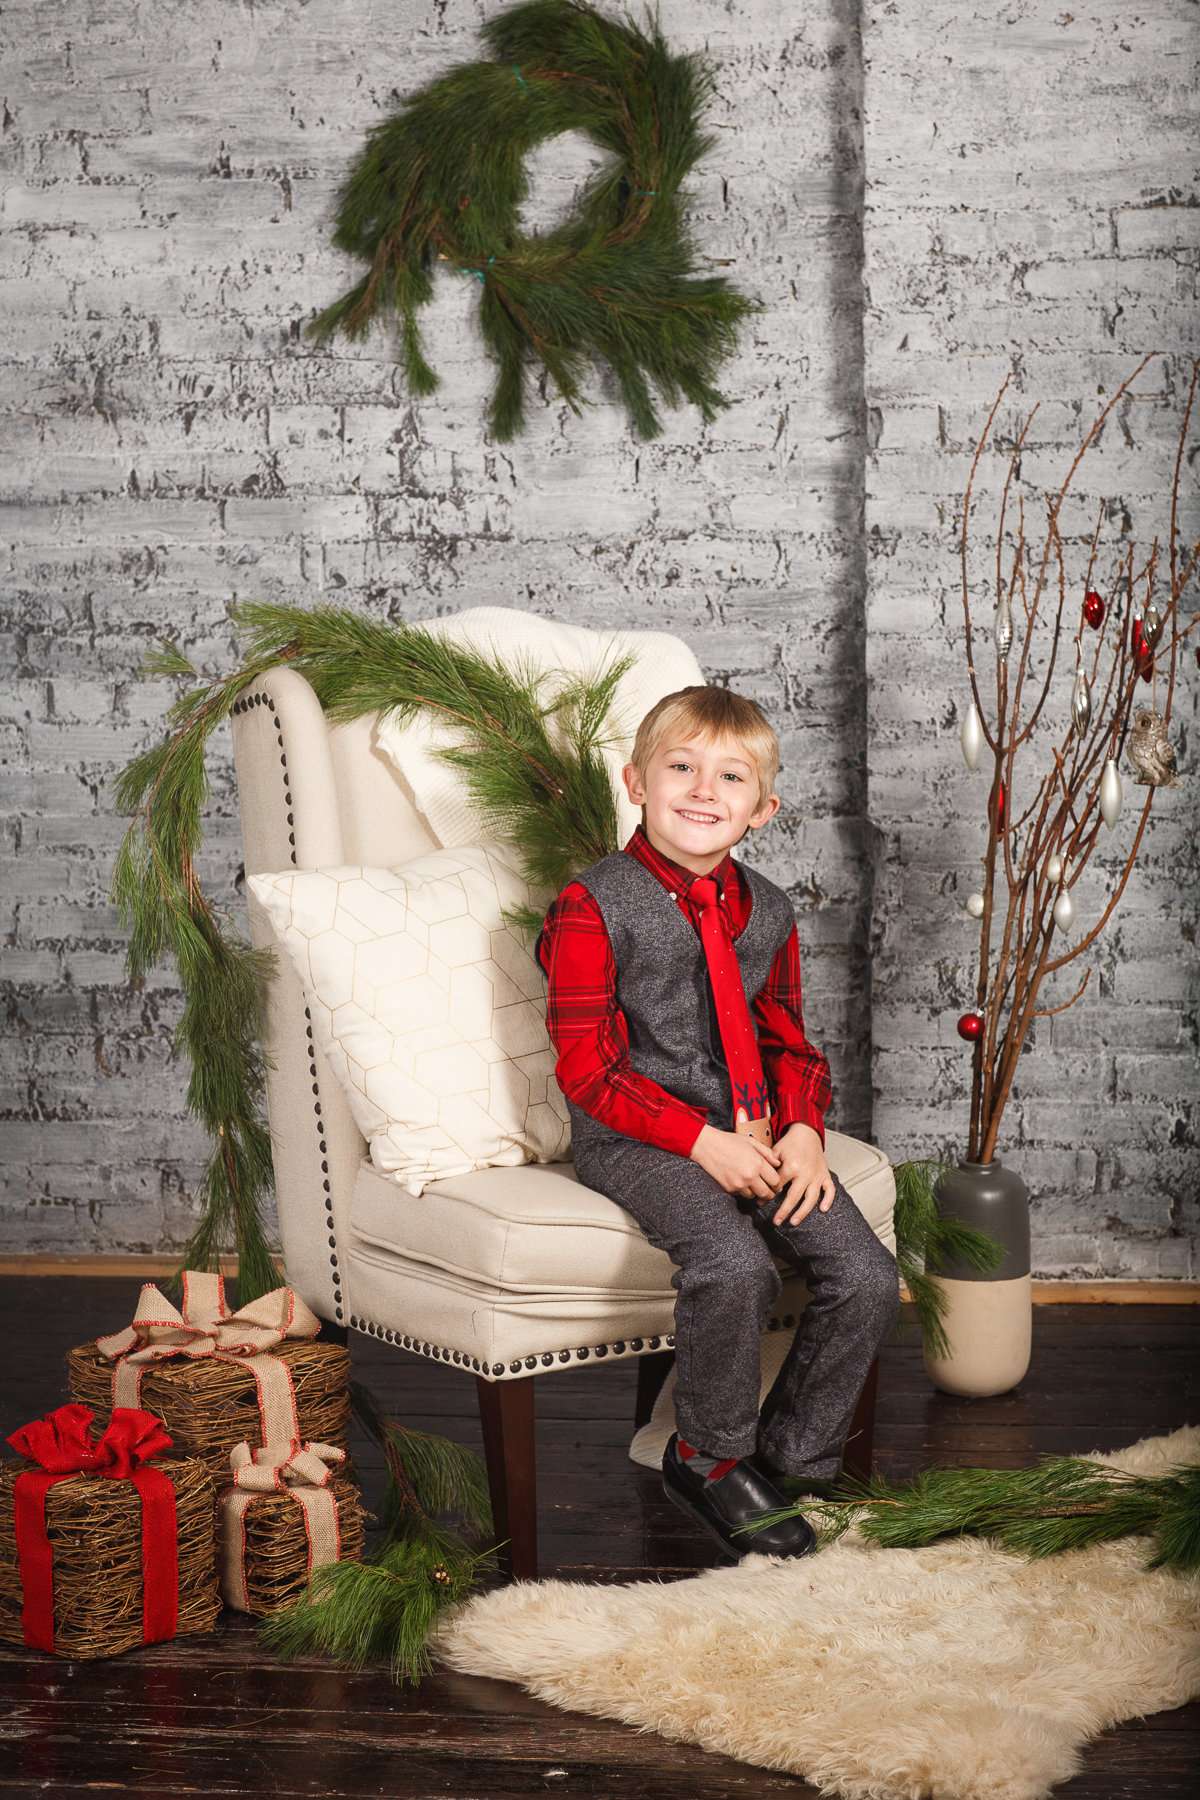 20161120_HolidayMiniSessions_Pettegrew_0001